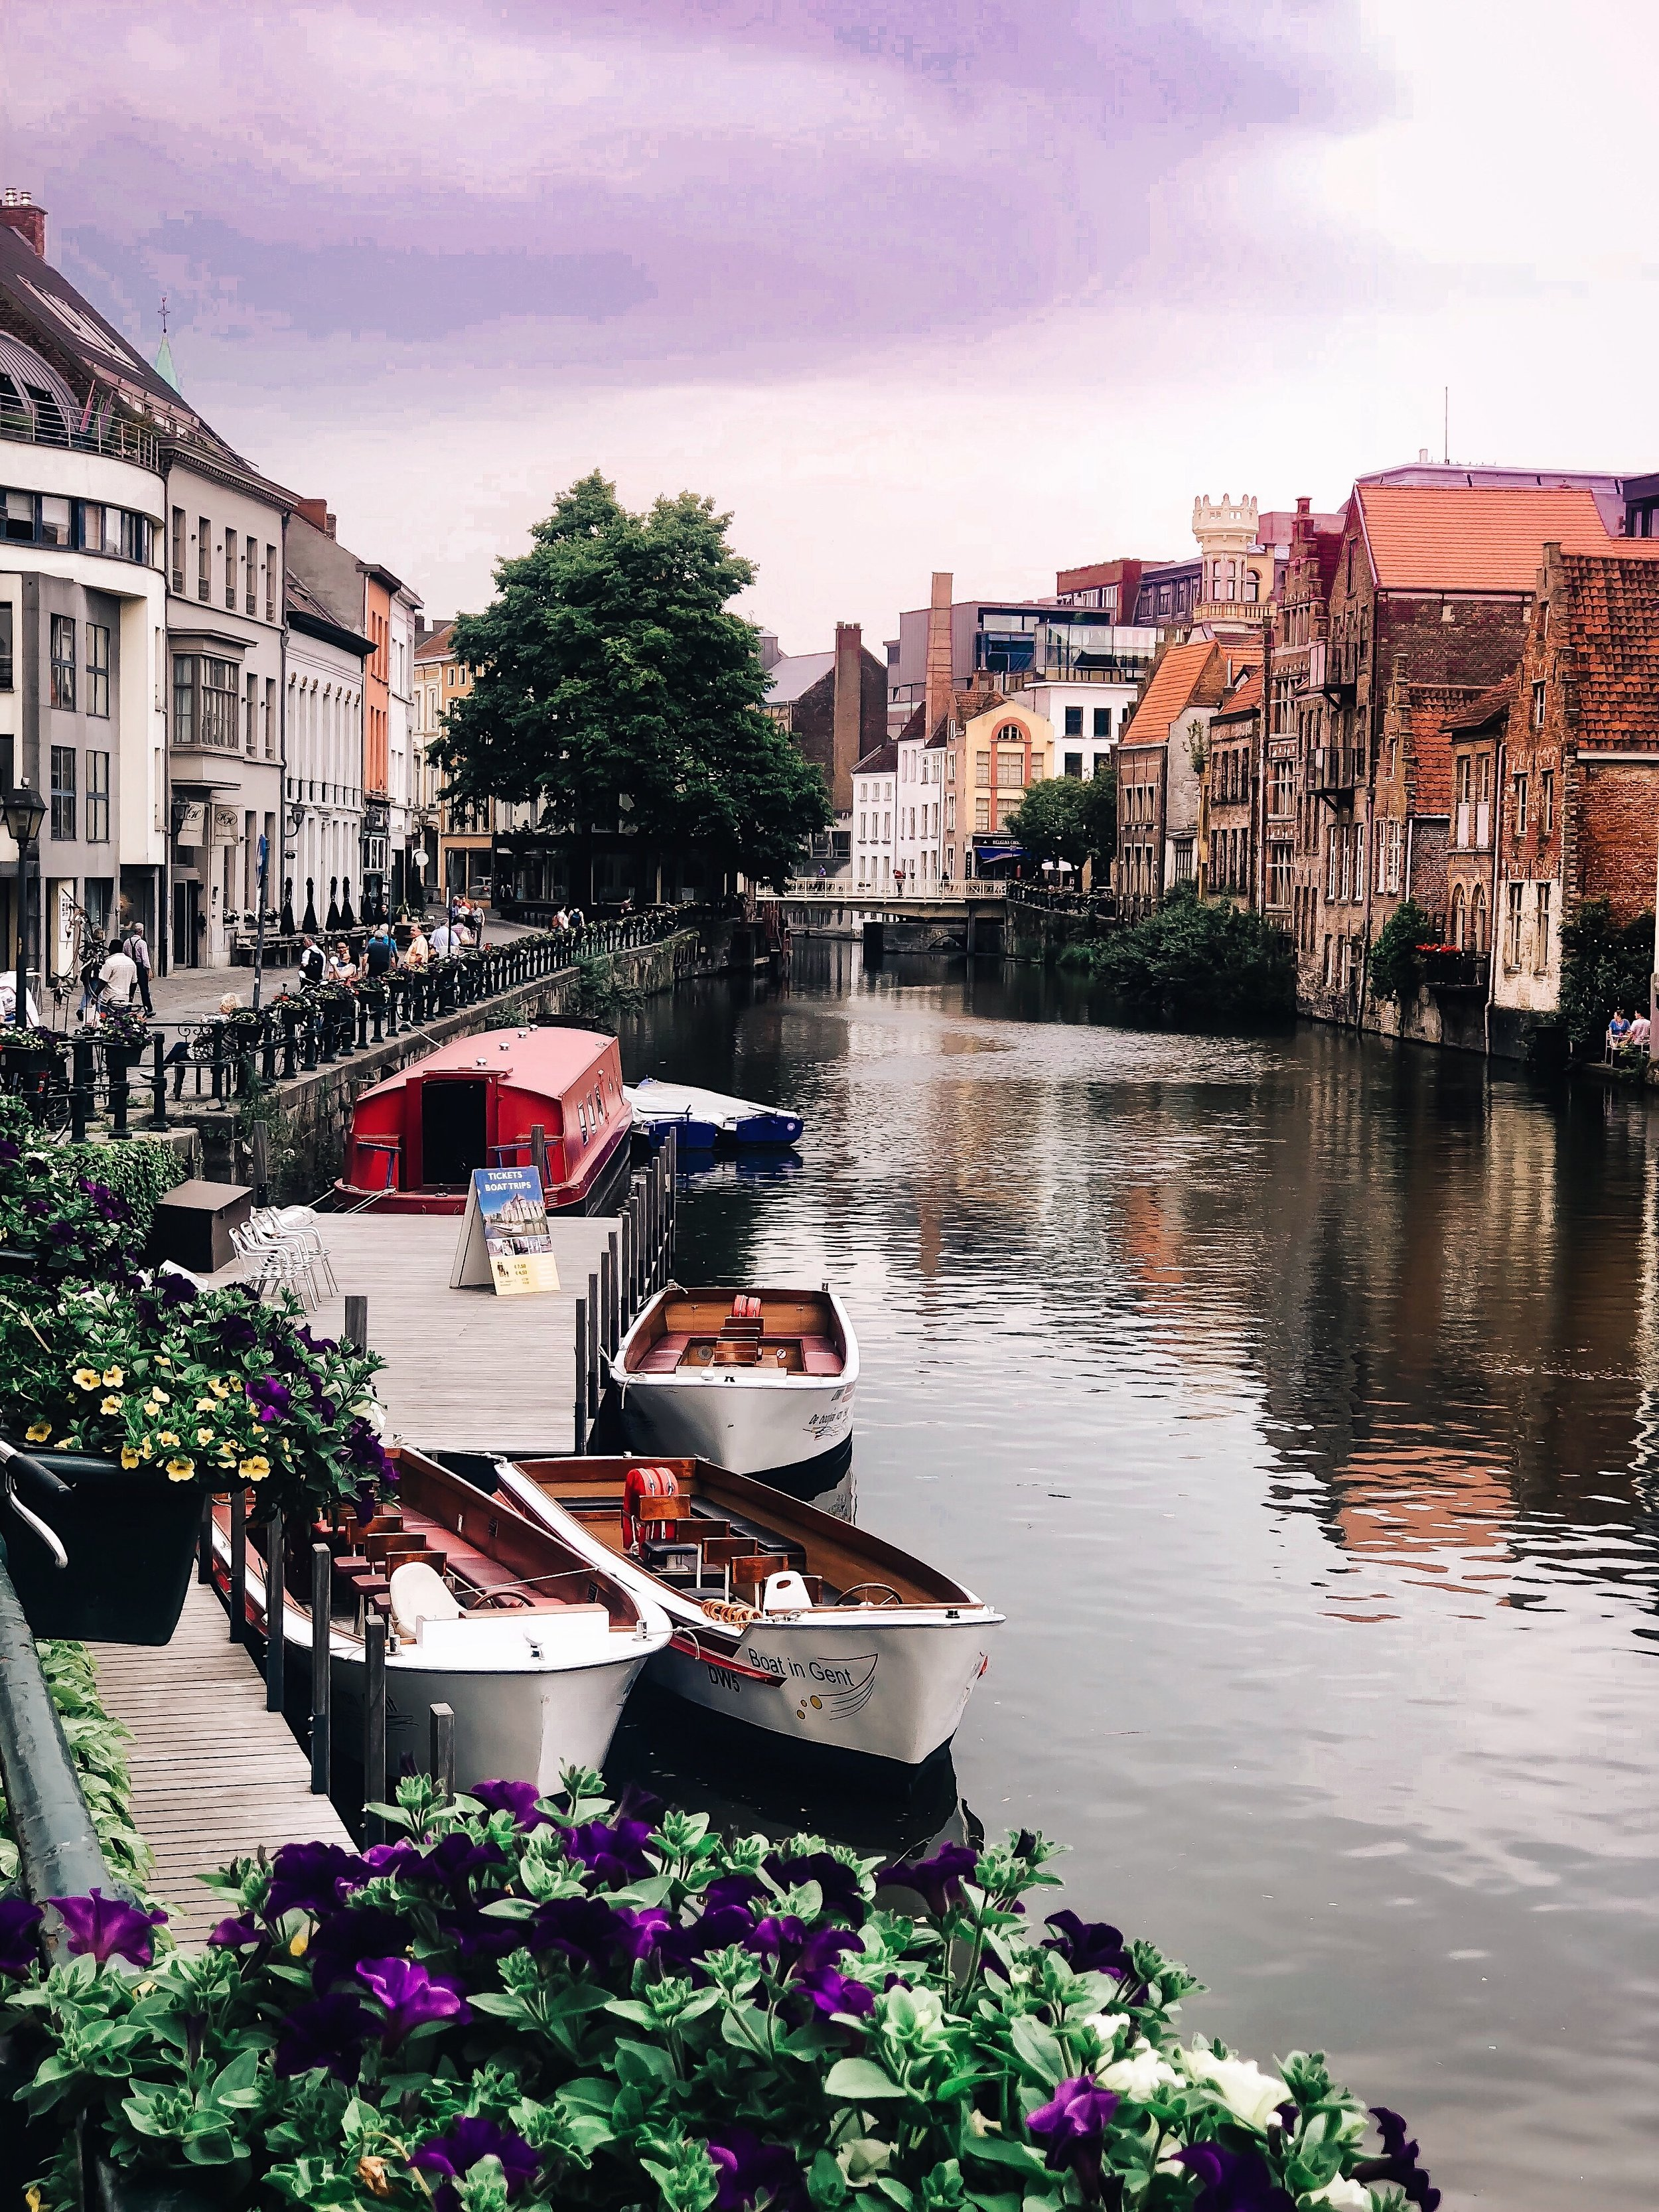 Belgium Travel Guide Bruges Ghent In 4 Days Esther Santer Fashion Blog NYC Street Style Blogger Outfit Sight Seeing Tourist Shop What How To Wear Expore What To Do Vacatiom Itinerary Short Stopover EuroTrip Europe Summer Layover Activities Suggestions.jpg